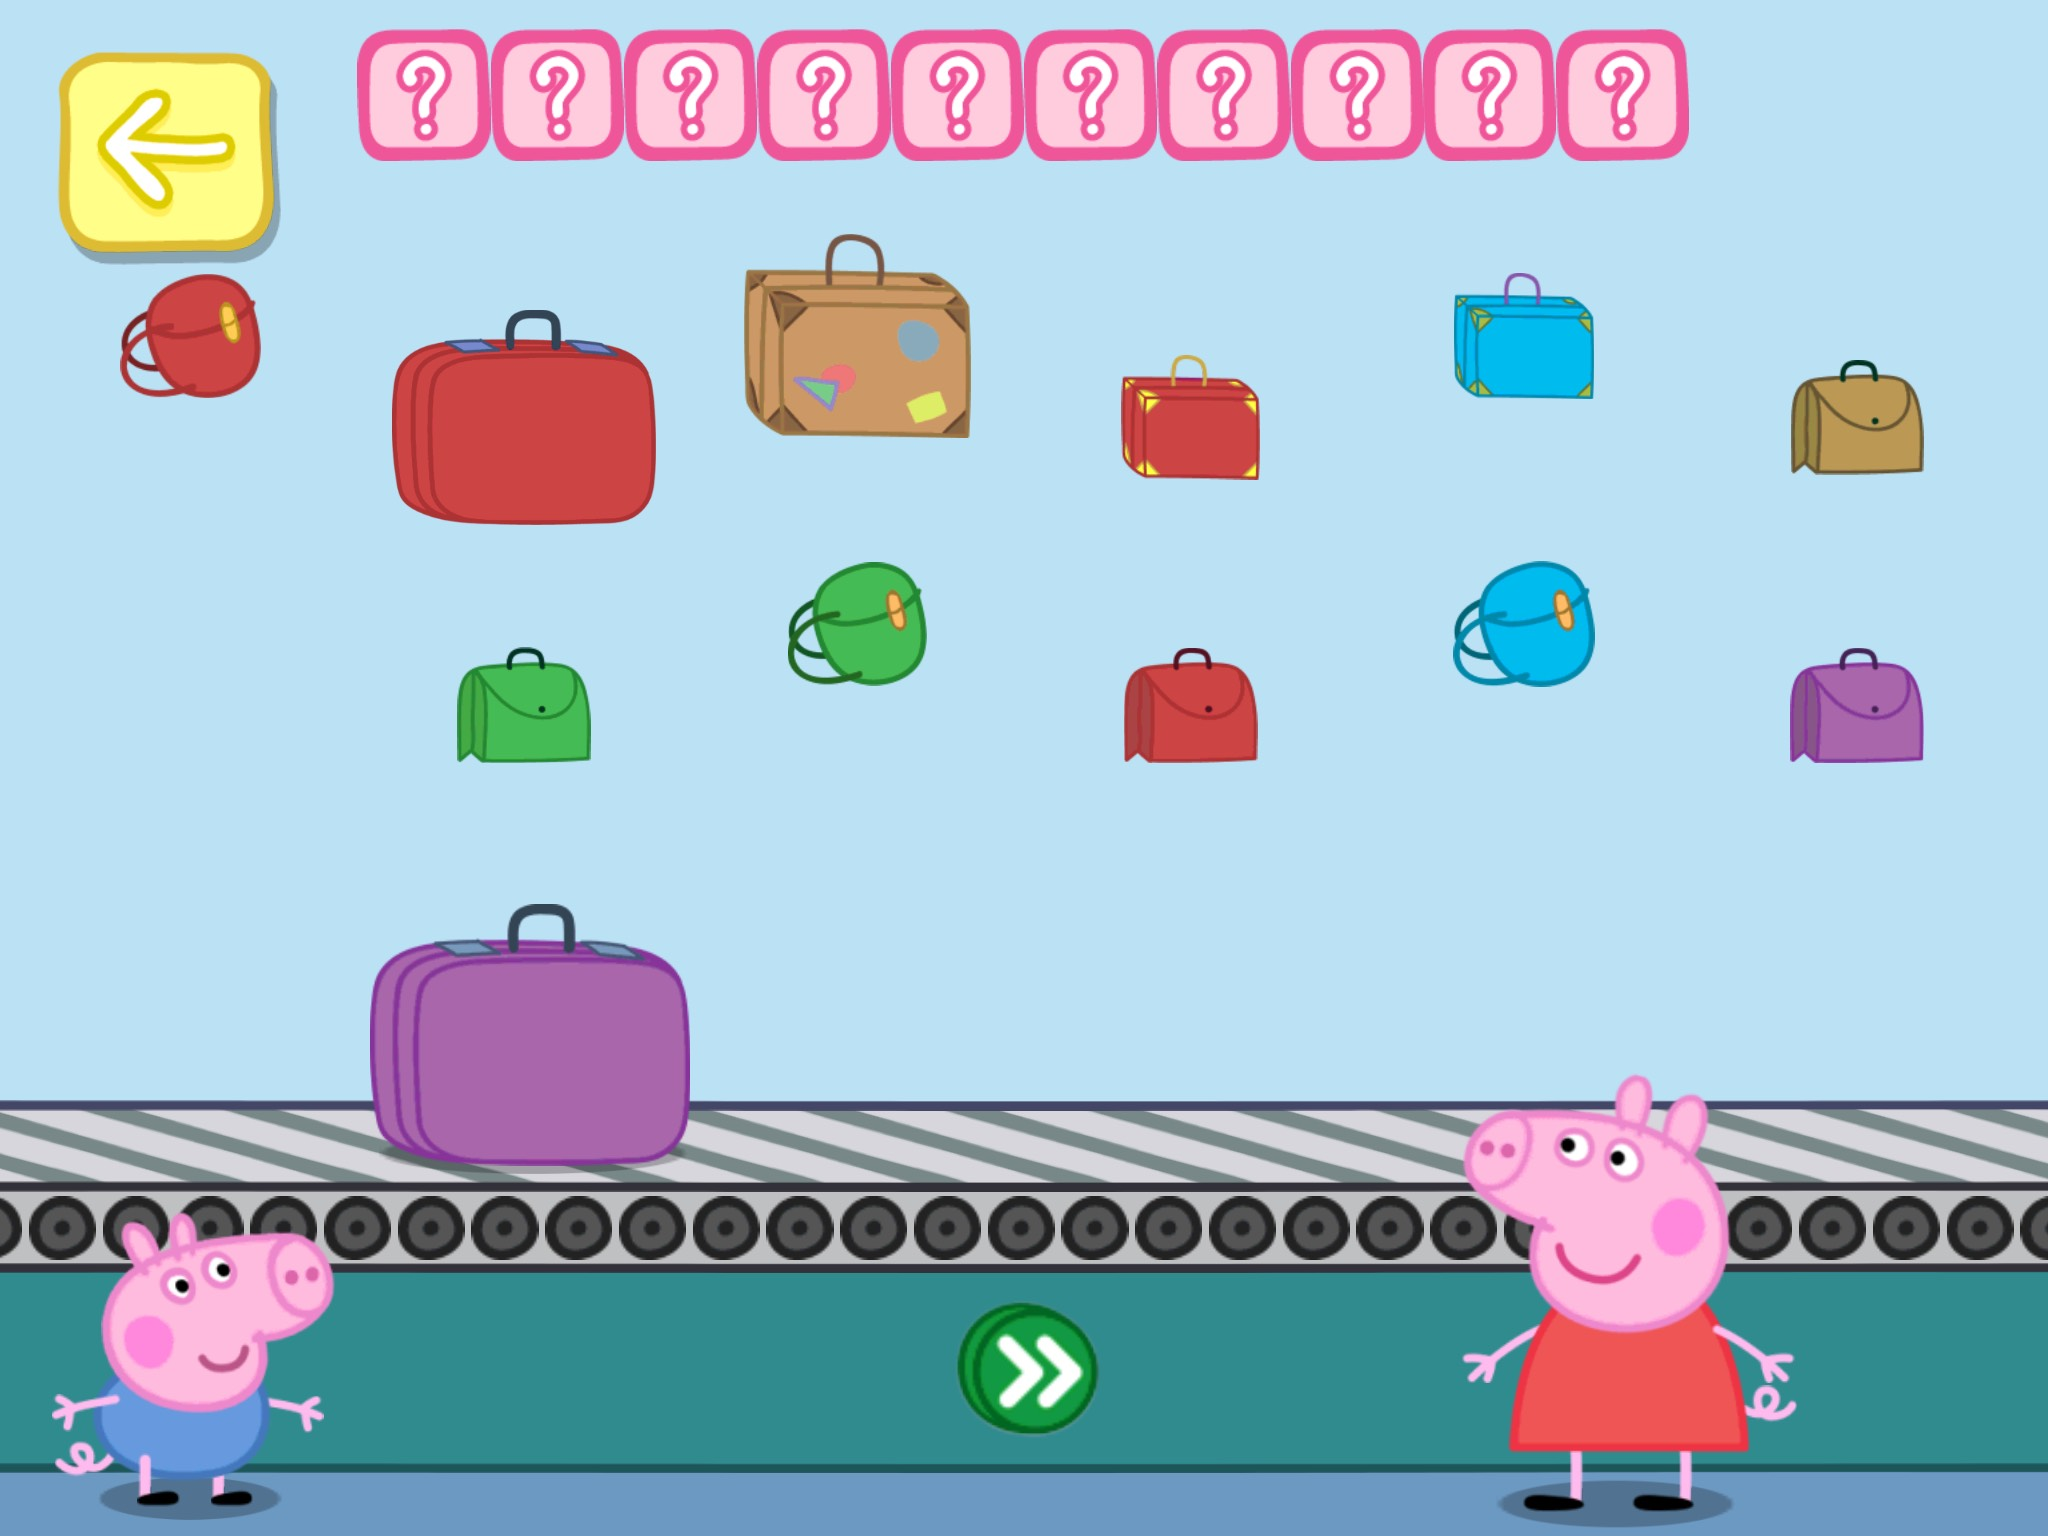 screenshot of Peppa Pig app displaying a variety of suitcases and boxes with question marks.